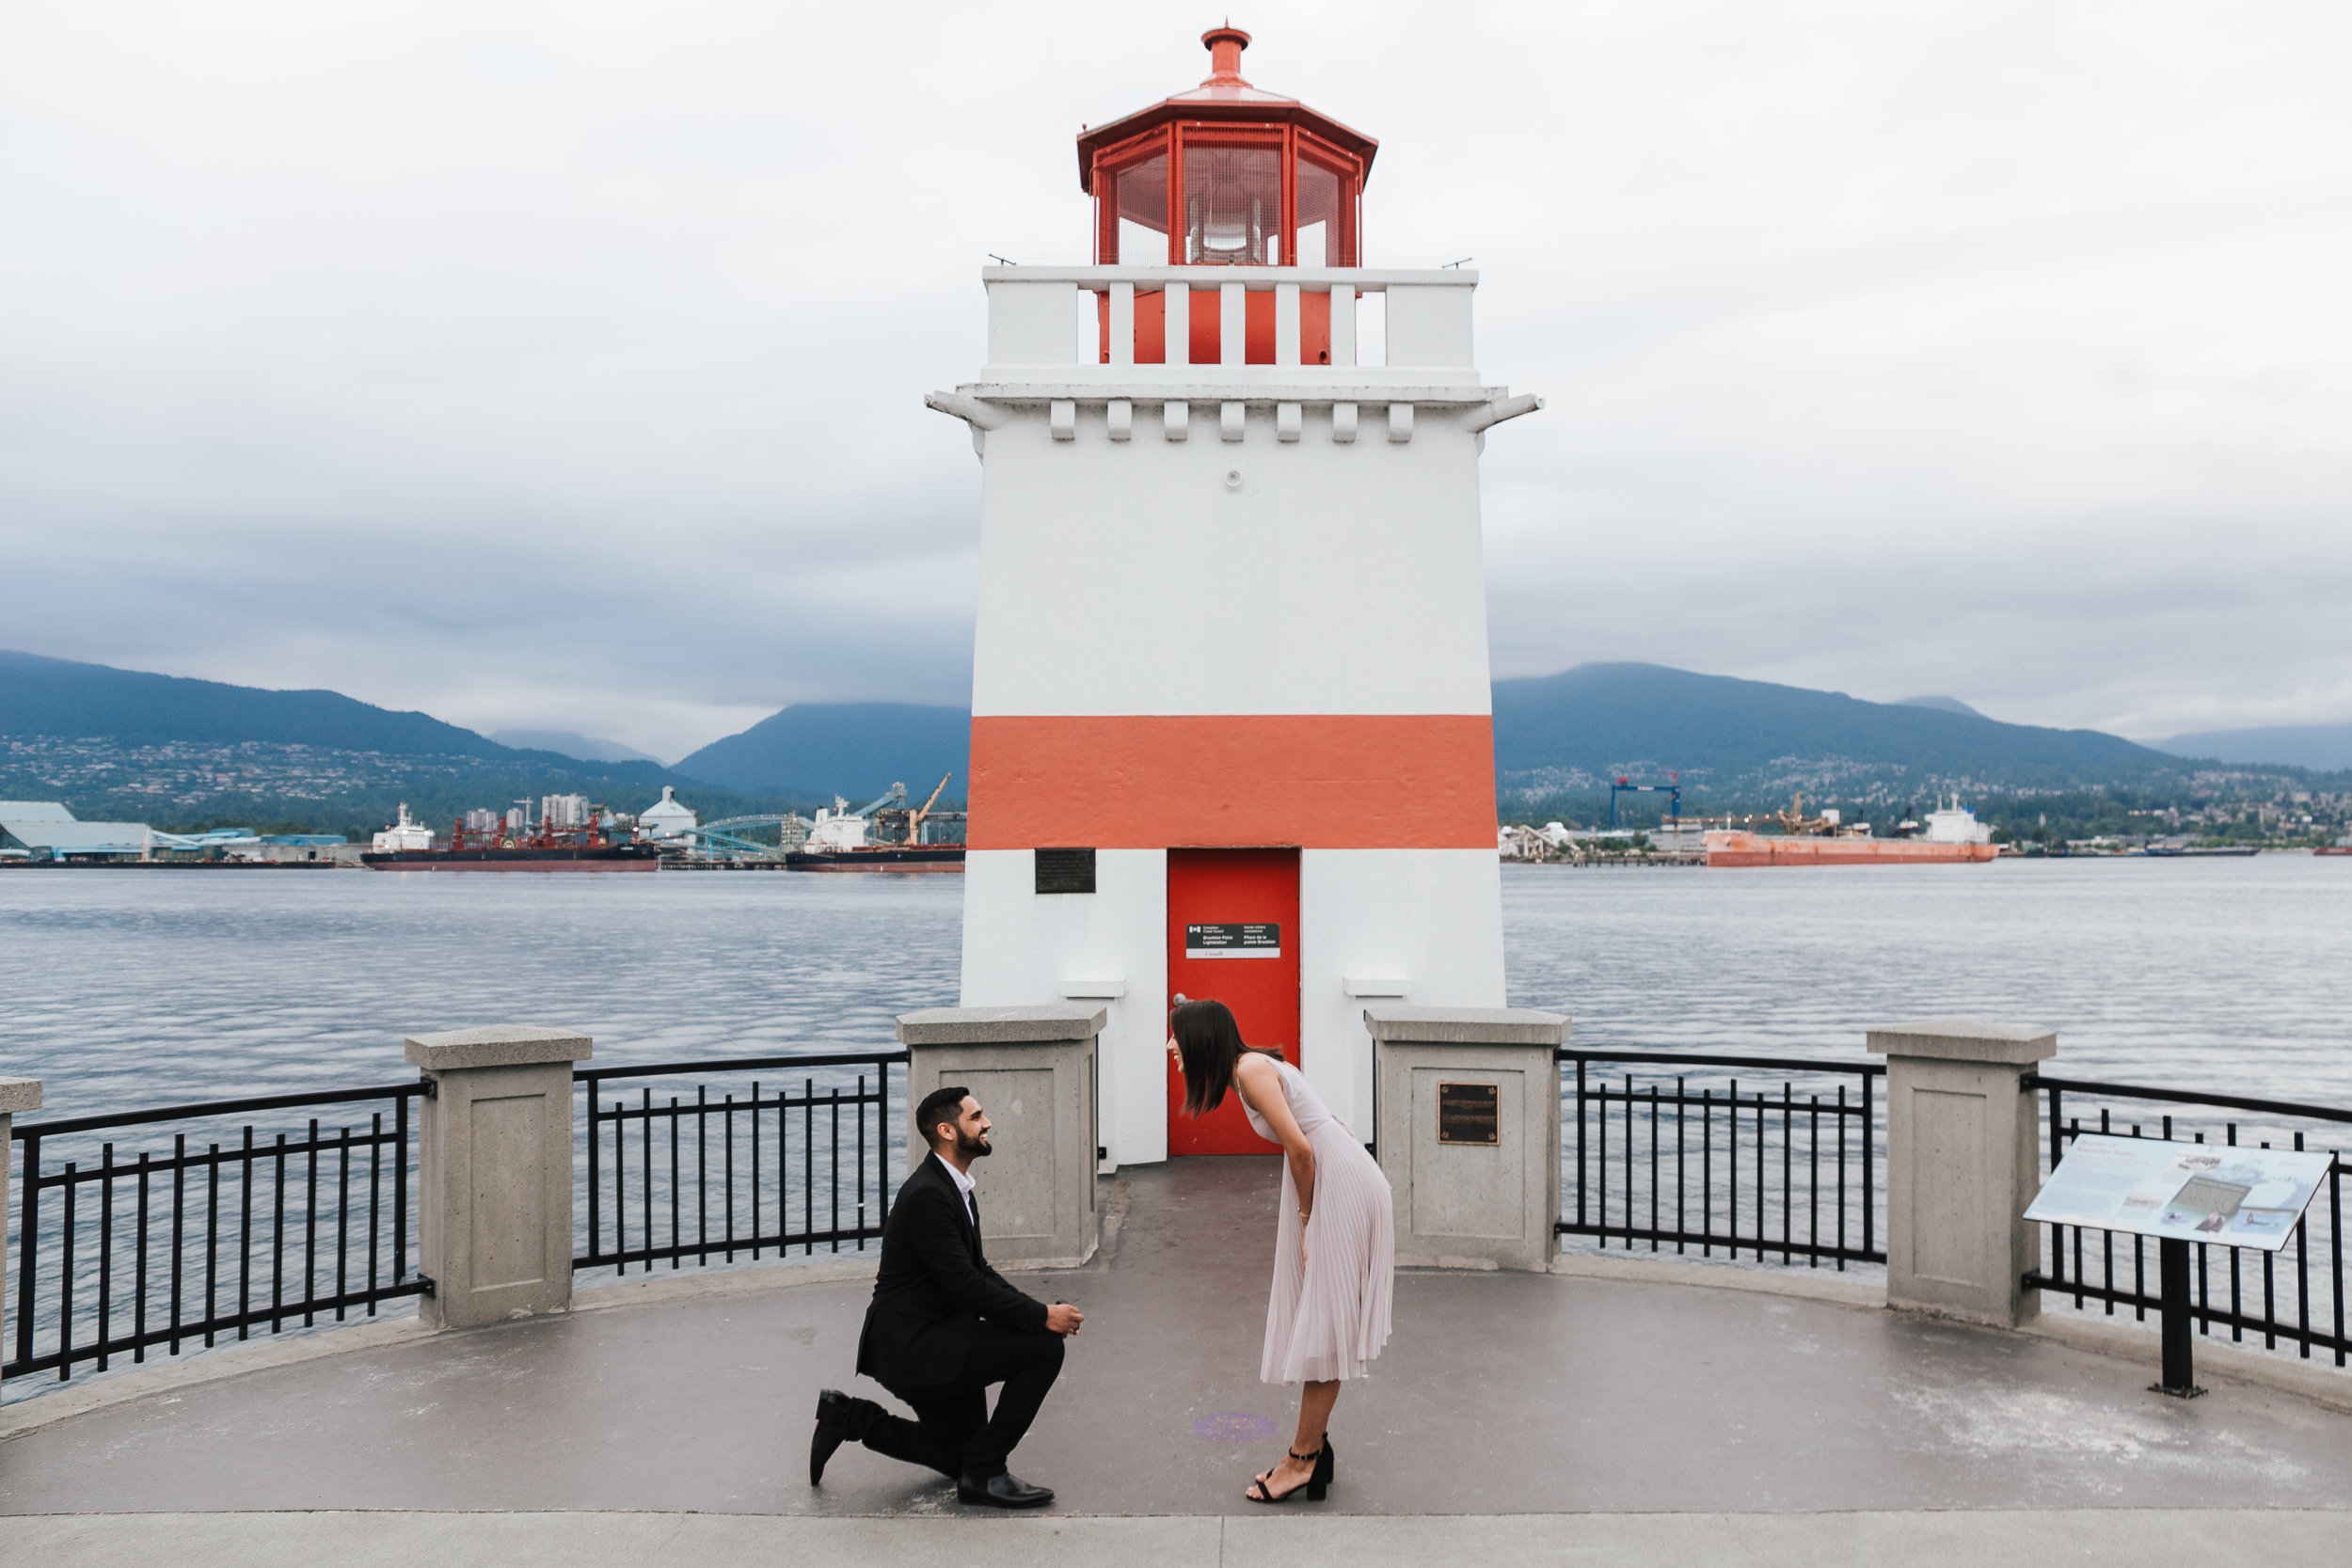 Boyfriend proposes to girlfriend at Brockton Point Lighthouse at Stanley Park.